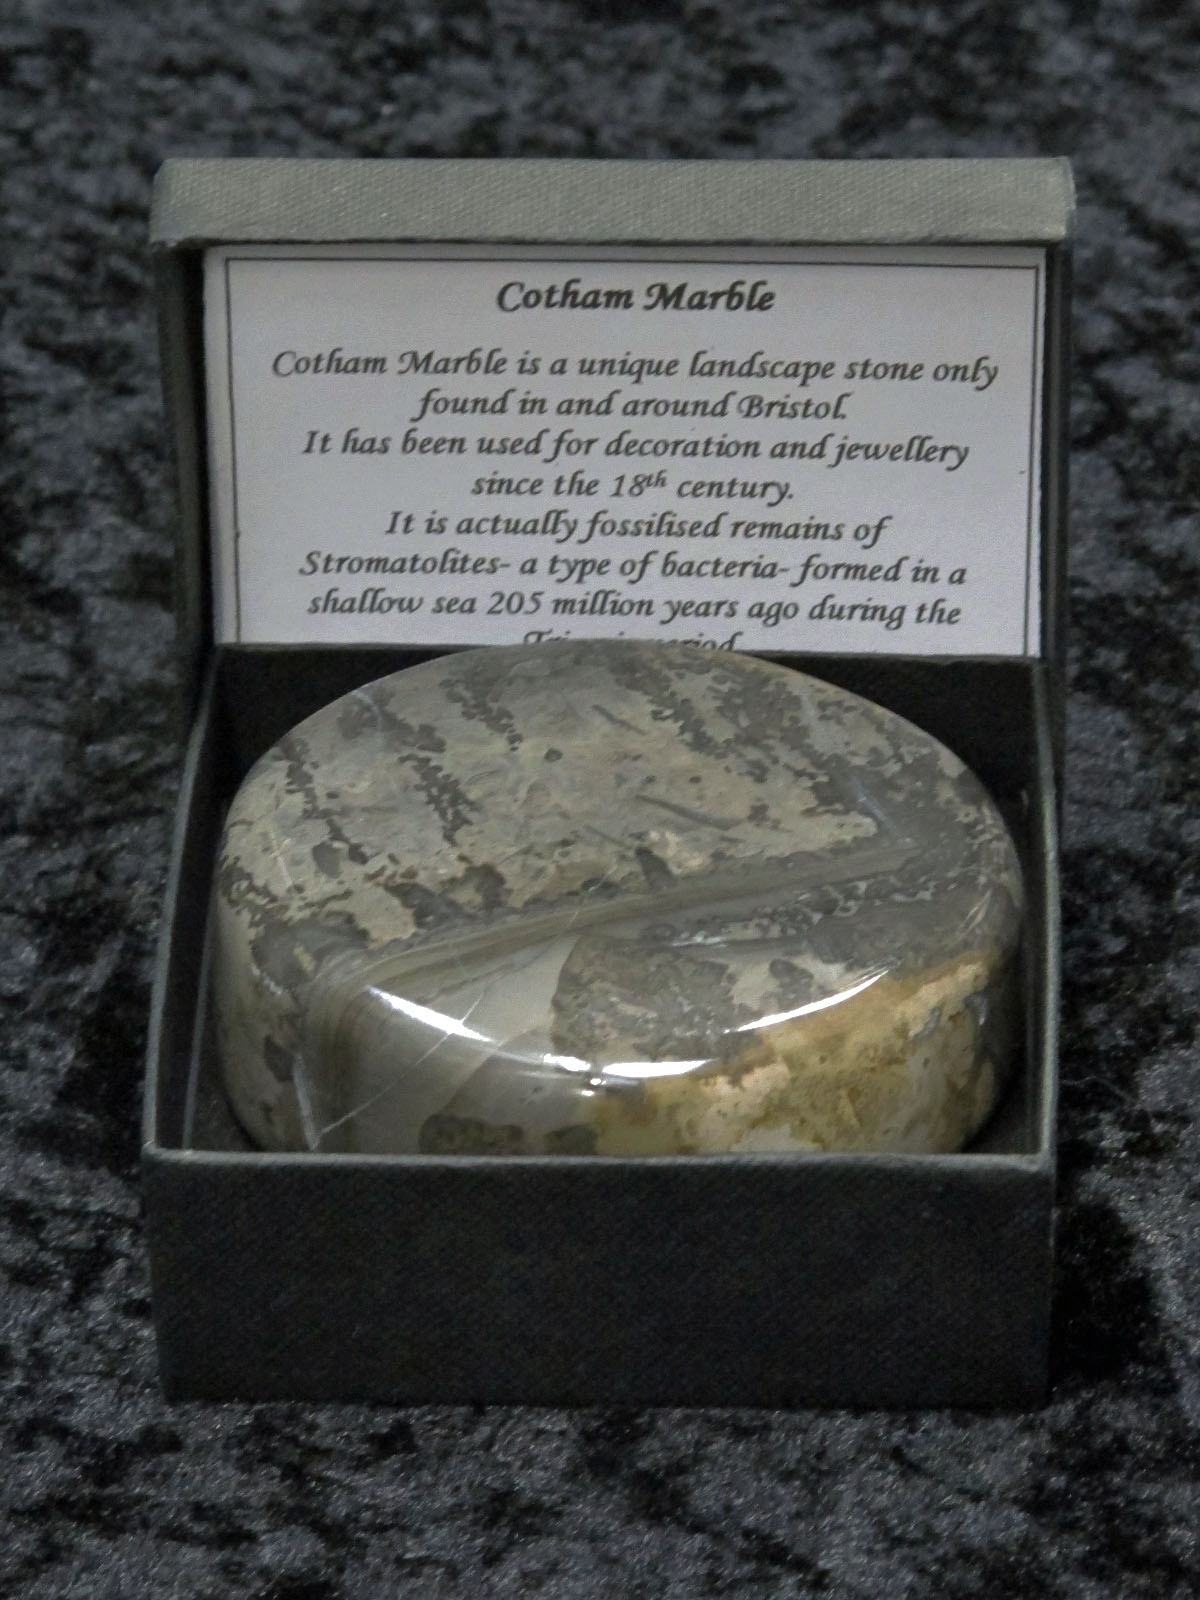 Collector's Guide: Cotham Marble